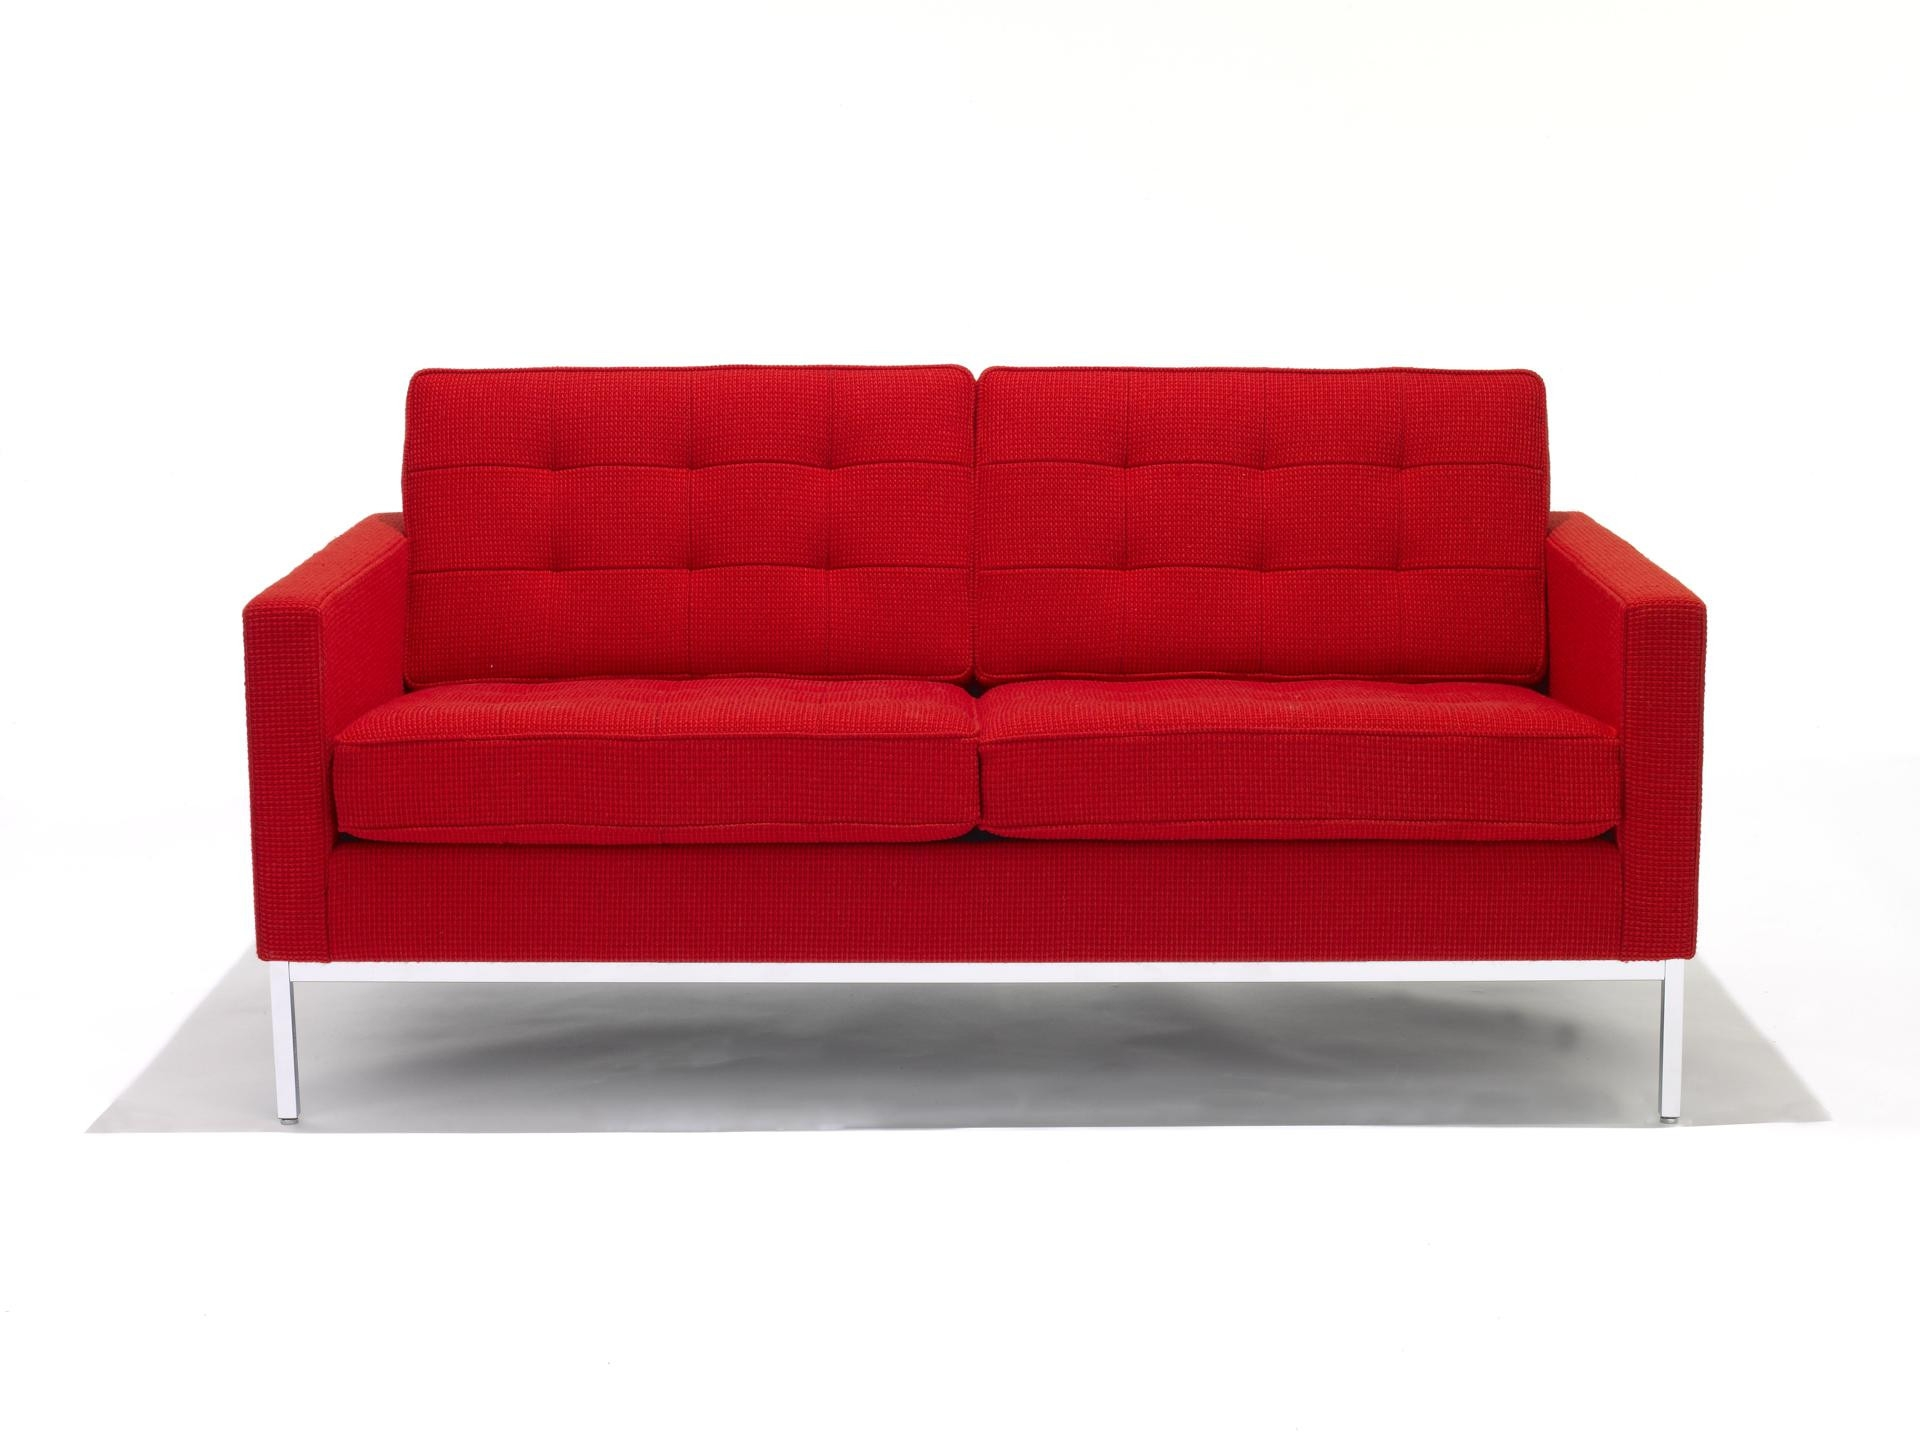 Florence Knoll Sofa 2 Seat Our Summer Sale Is Now On Up To 20 Pertaining To Florence Medium Sofas (View 7 of 15)